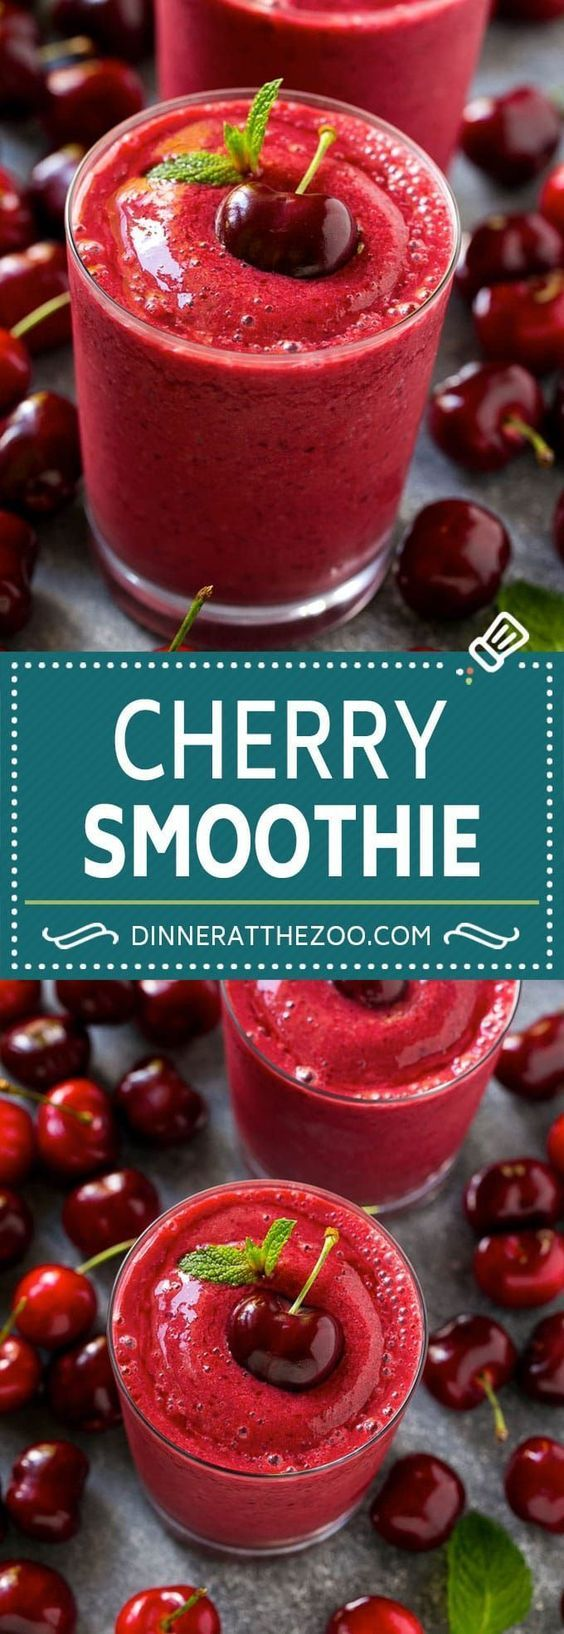 Cherry Smoothie - Dinner at the Zoo